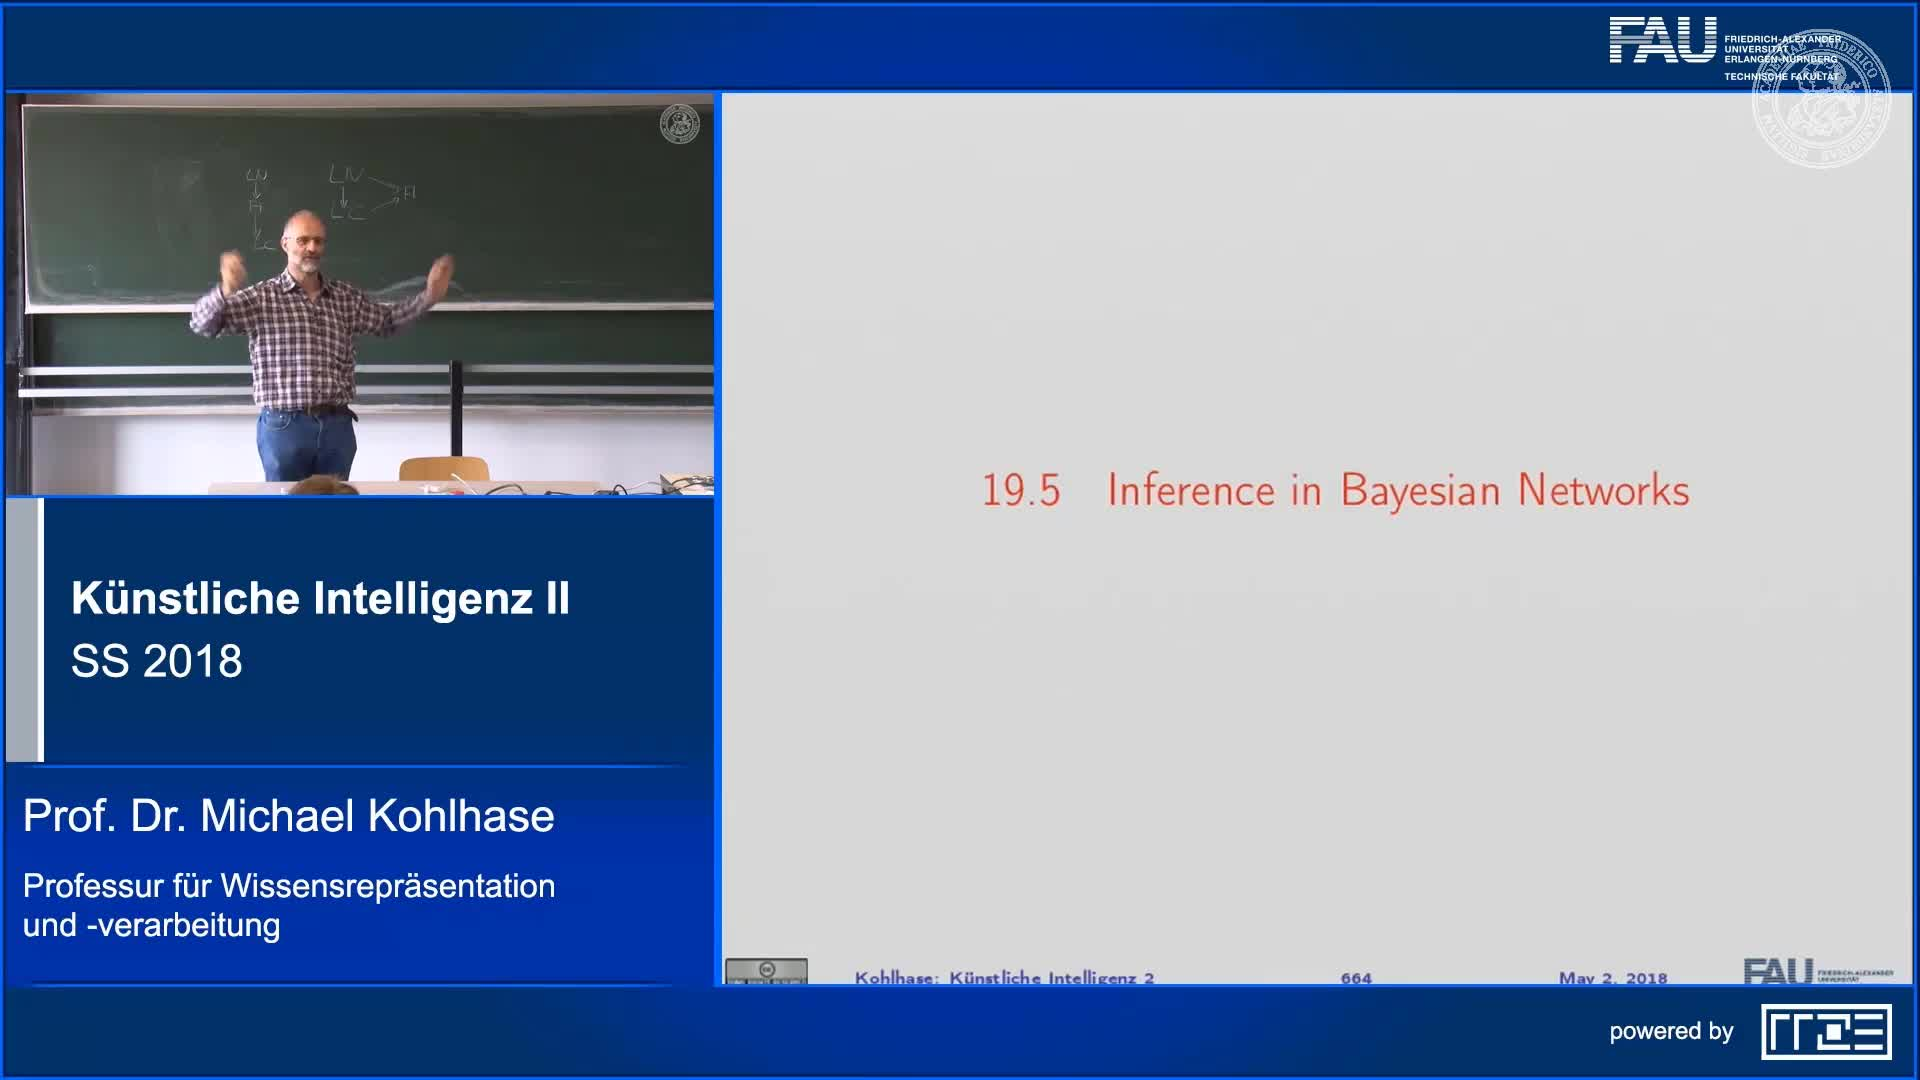 21.5. Inference in Bayesian Networks preview image